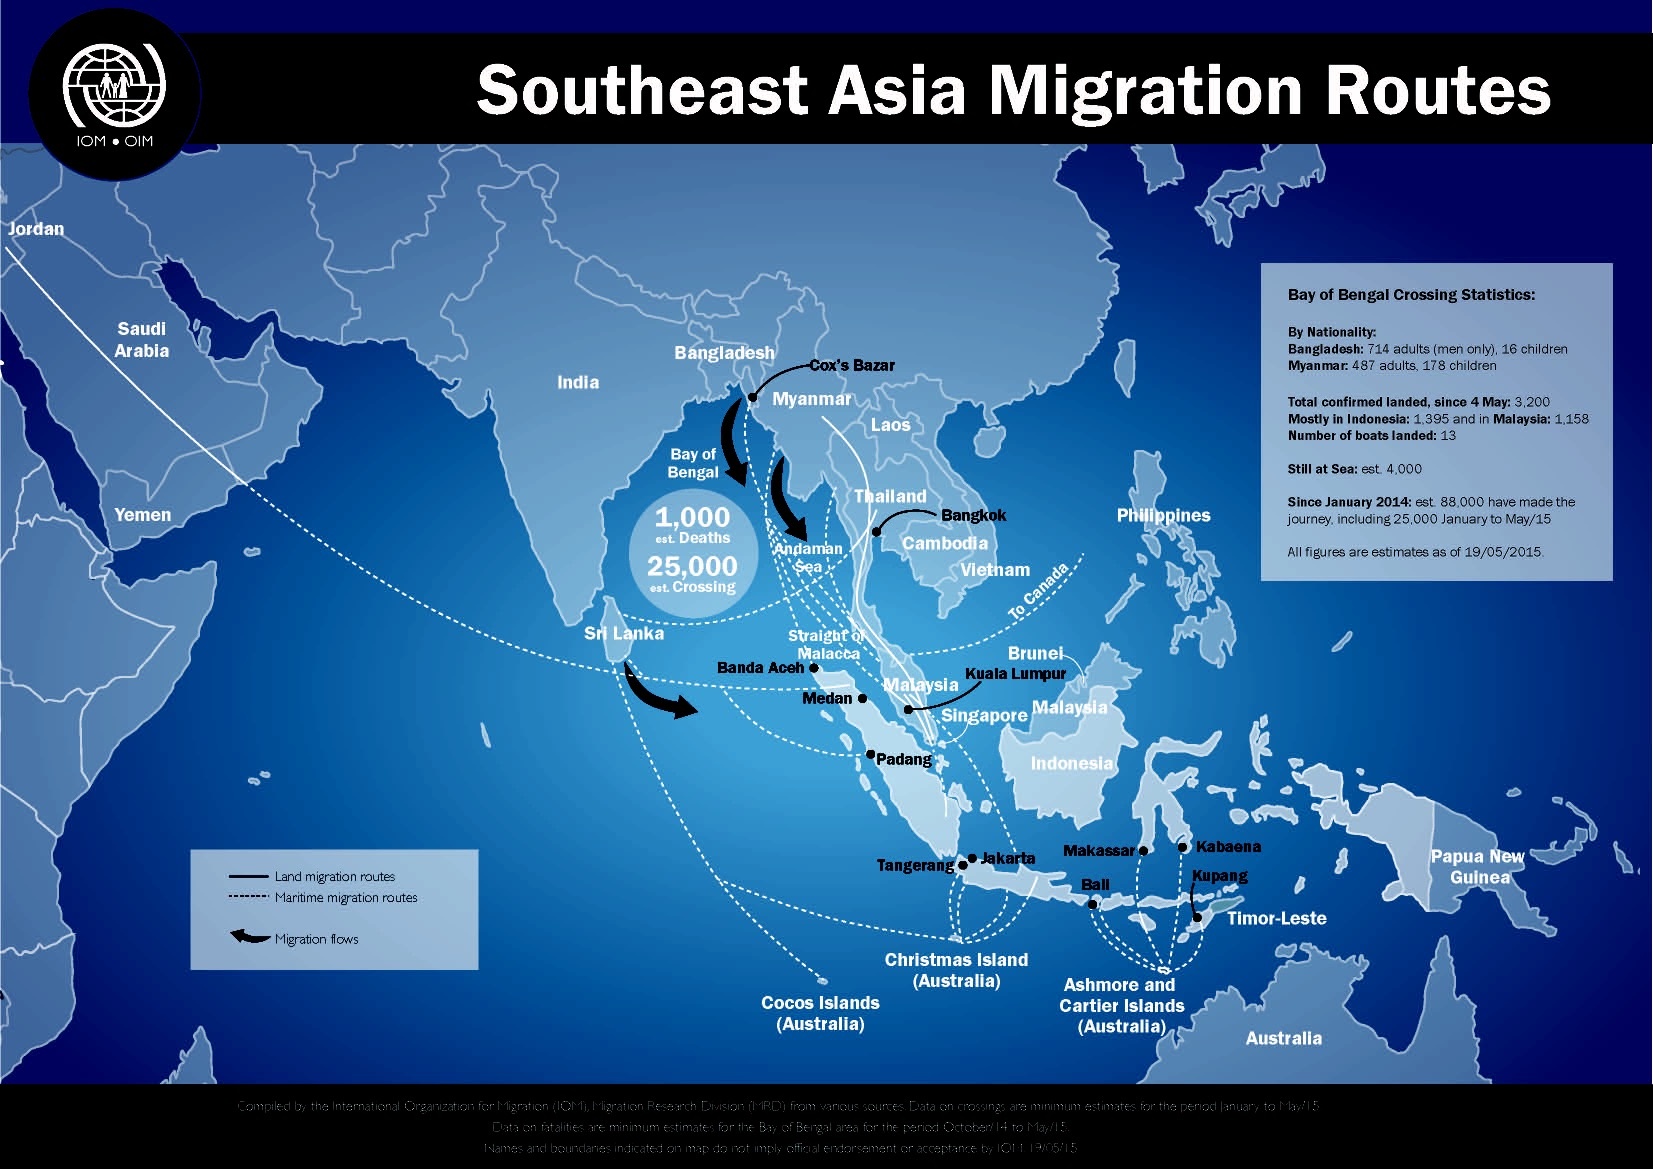 South East Asia Migration